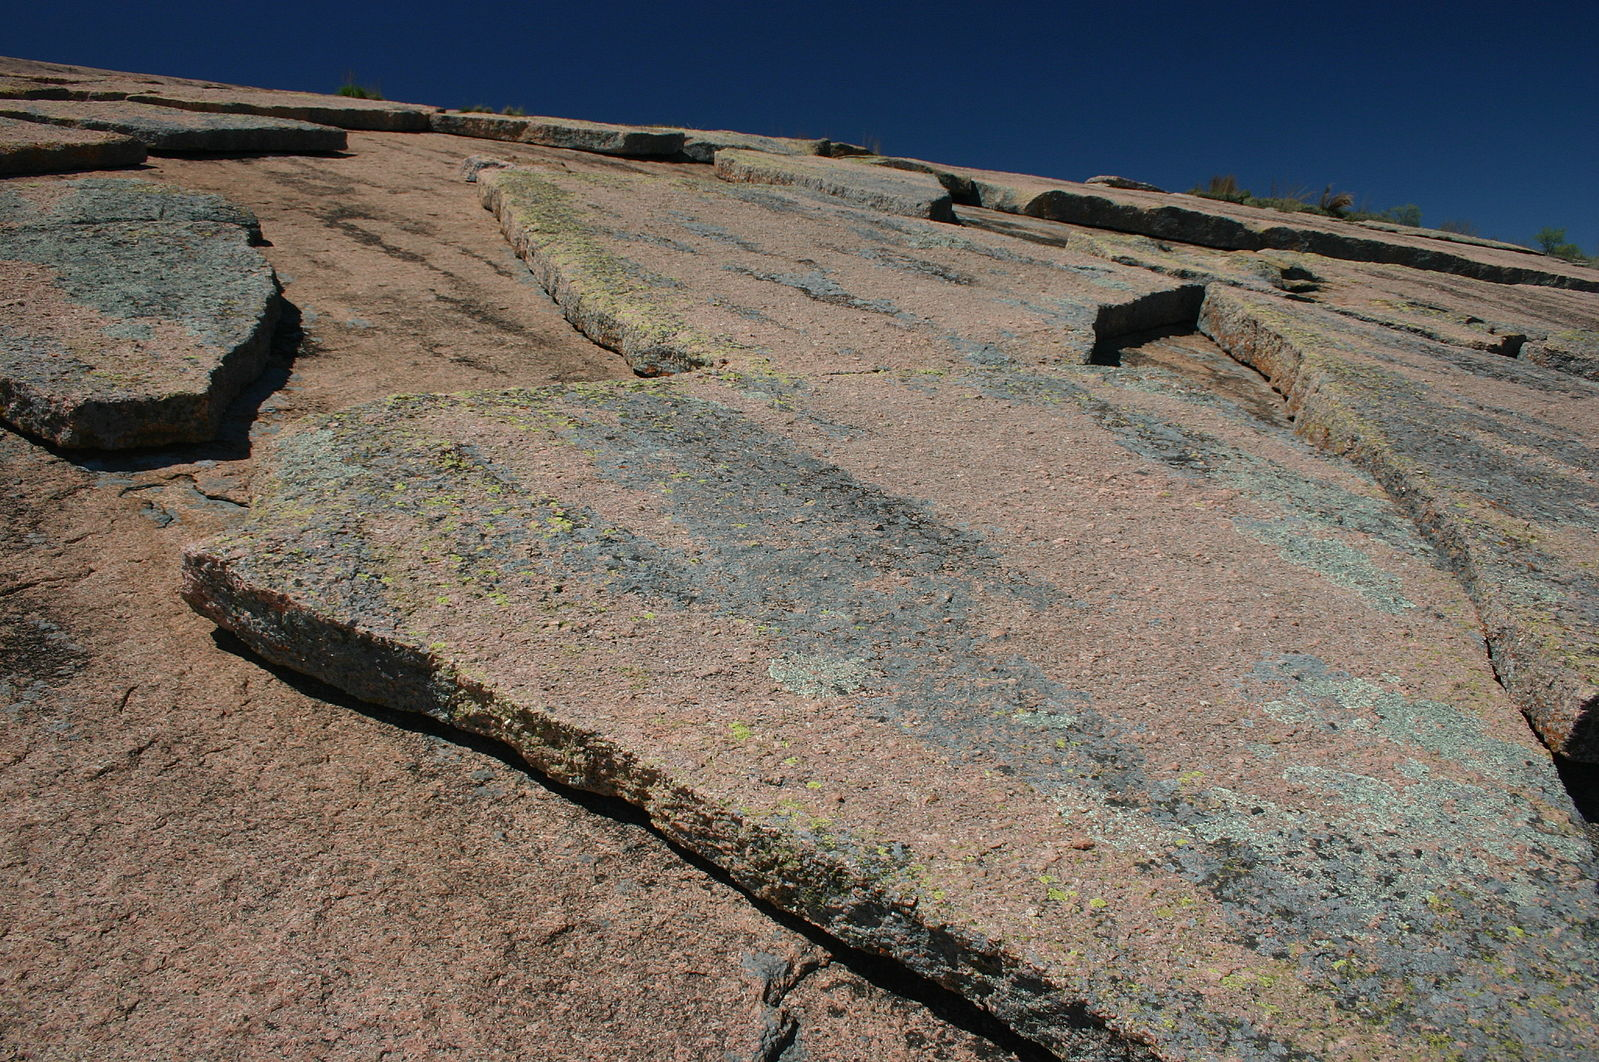 Granite rock has a relatively thin layer that is peeling away